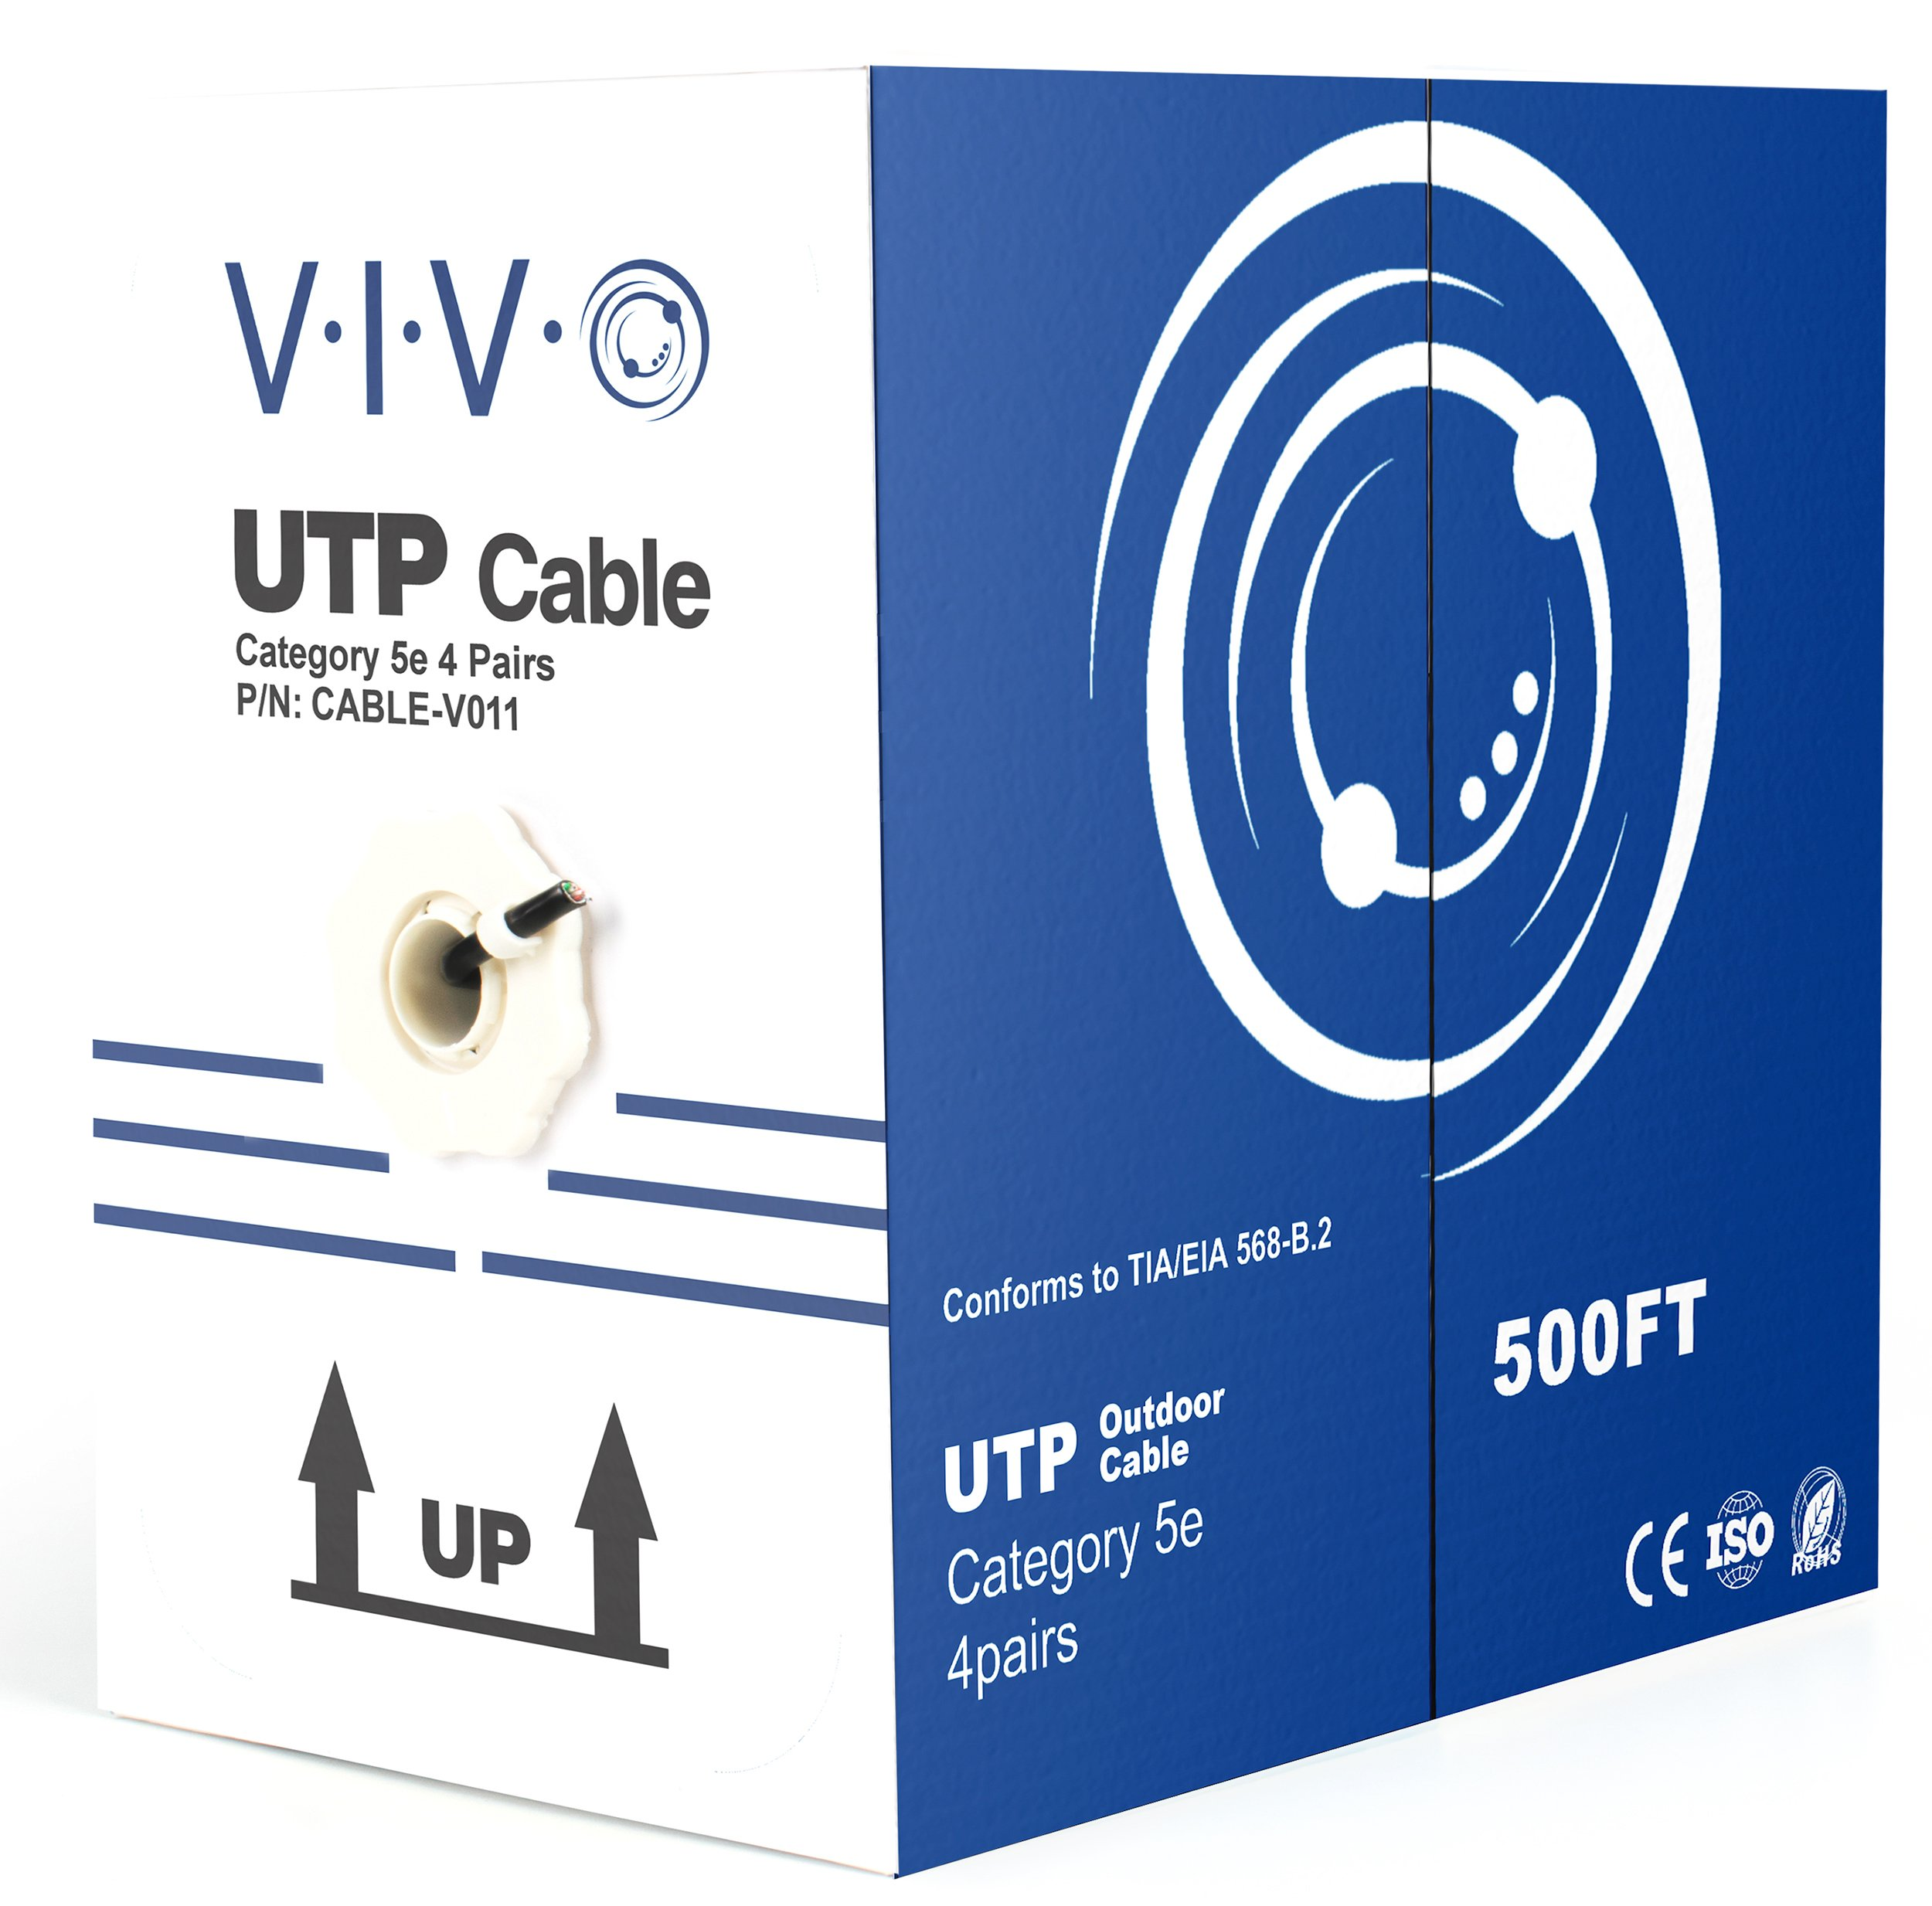 VIVO Black 500ft Bulk Cat5e, CCA Ethernet Cable, UTP Pull Box | Cat-5e Wire, Waterproof, Outdoor, Direct Burial (CABLE-V011) by VIVO